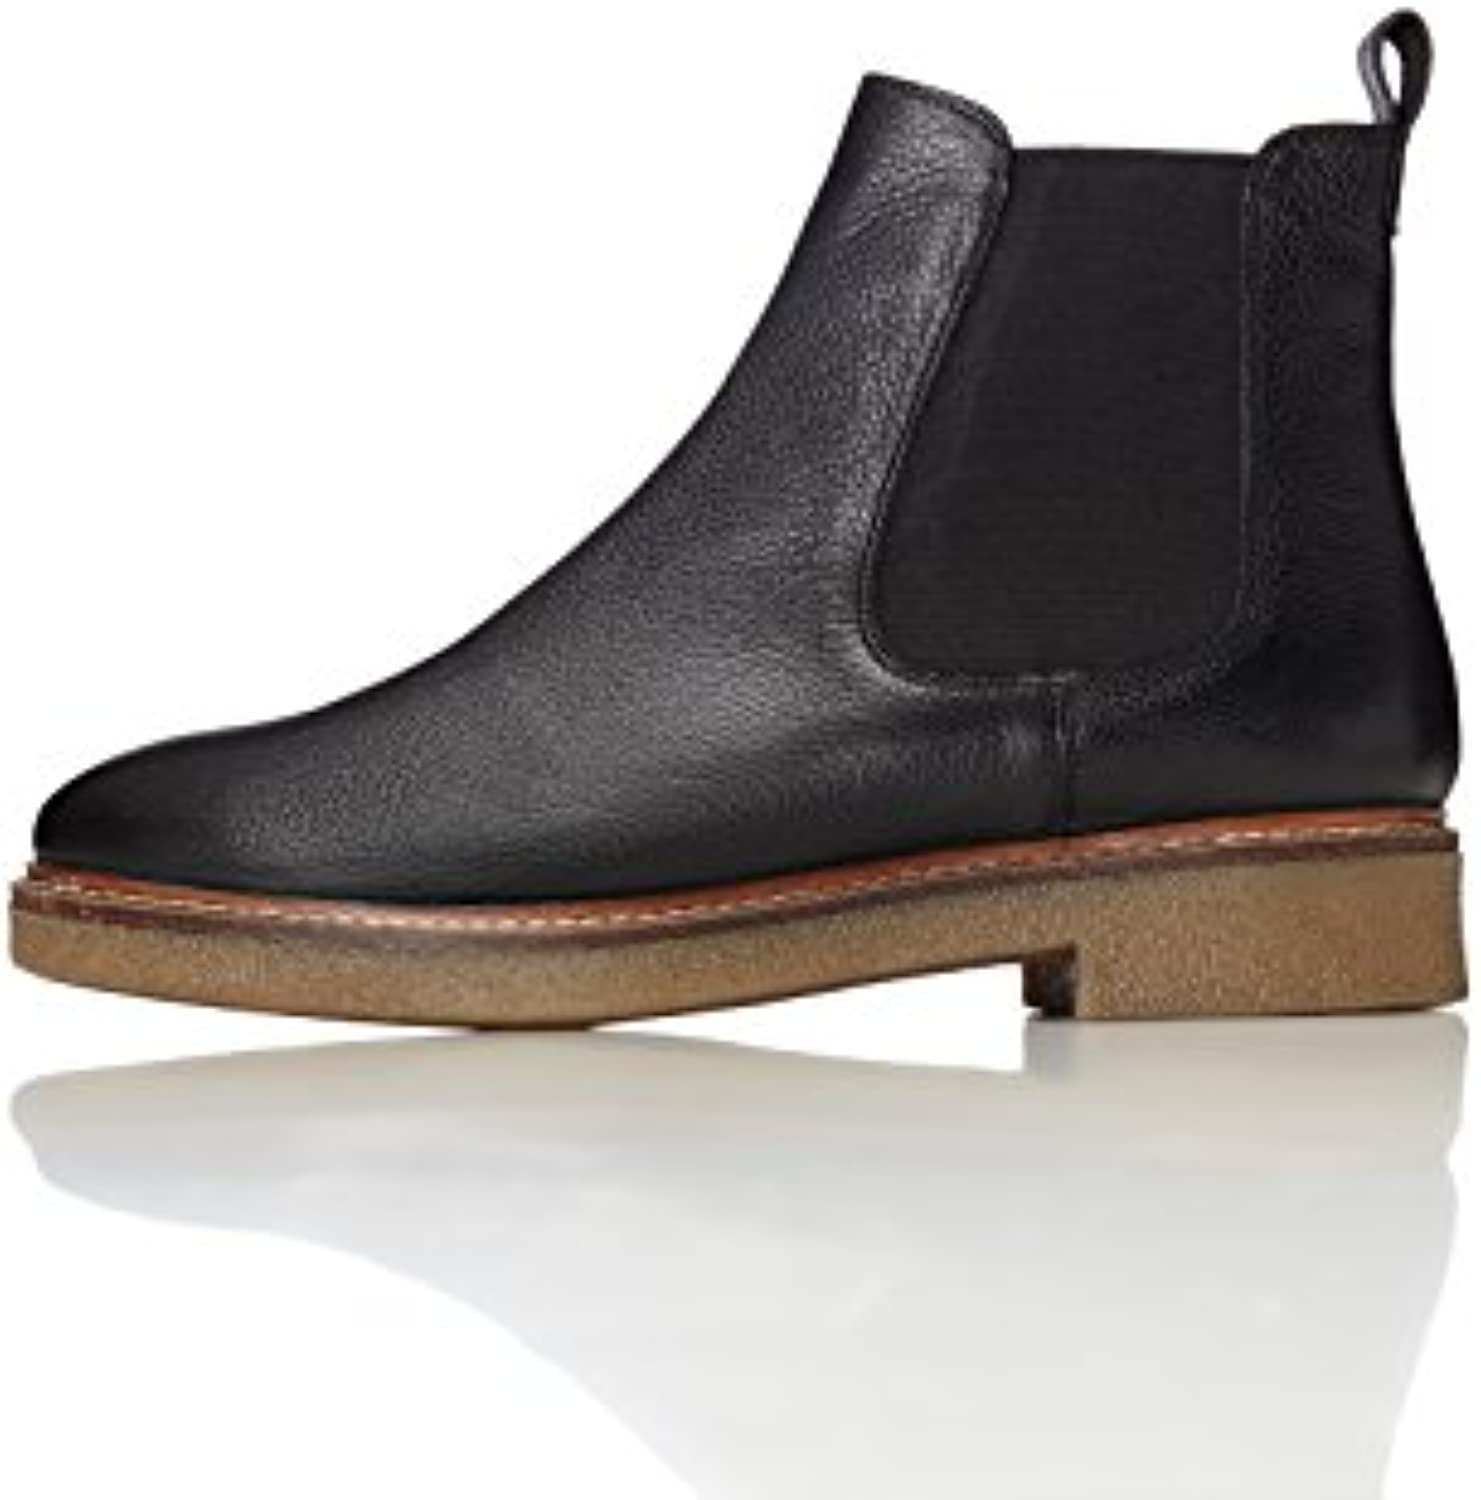 1d48923bcbf30 FIND Women rsquo s Chelsea Boots in Leather Gum Sole Rand B072HJ64SK  B072HJ64SK B072HJ64SK Parent 0b3d1d